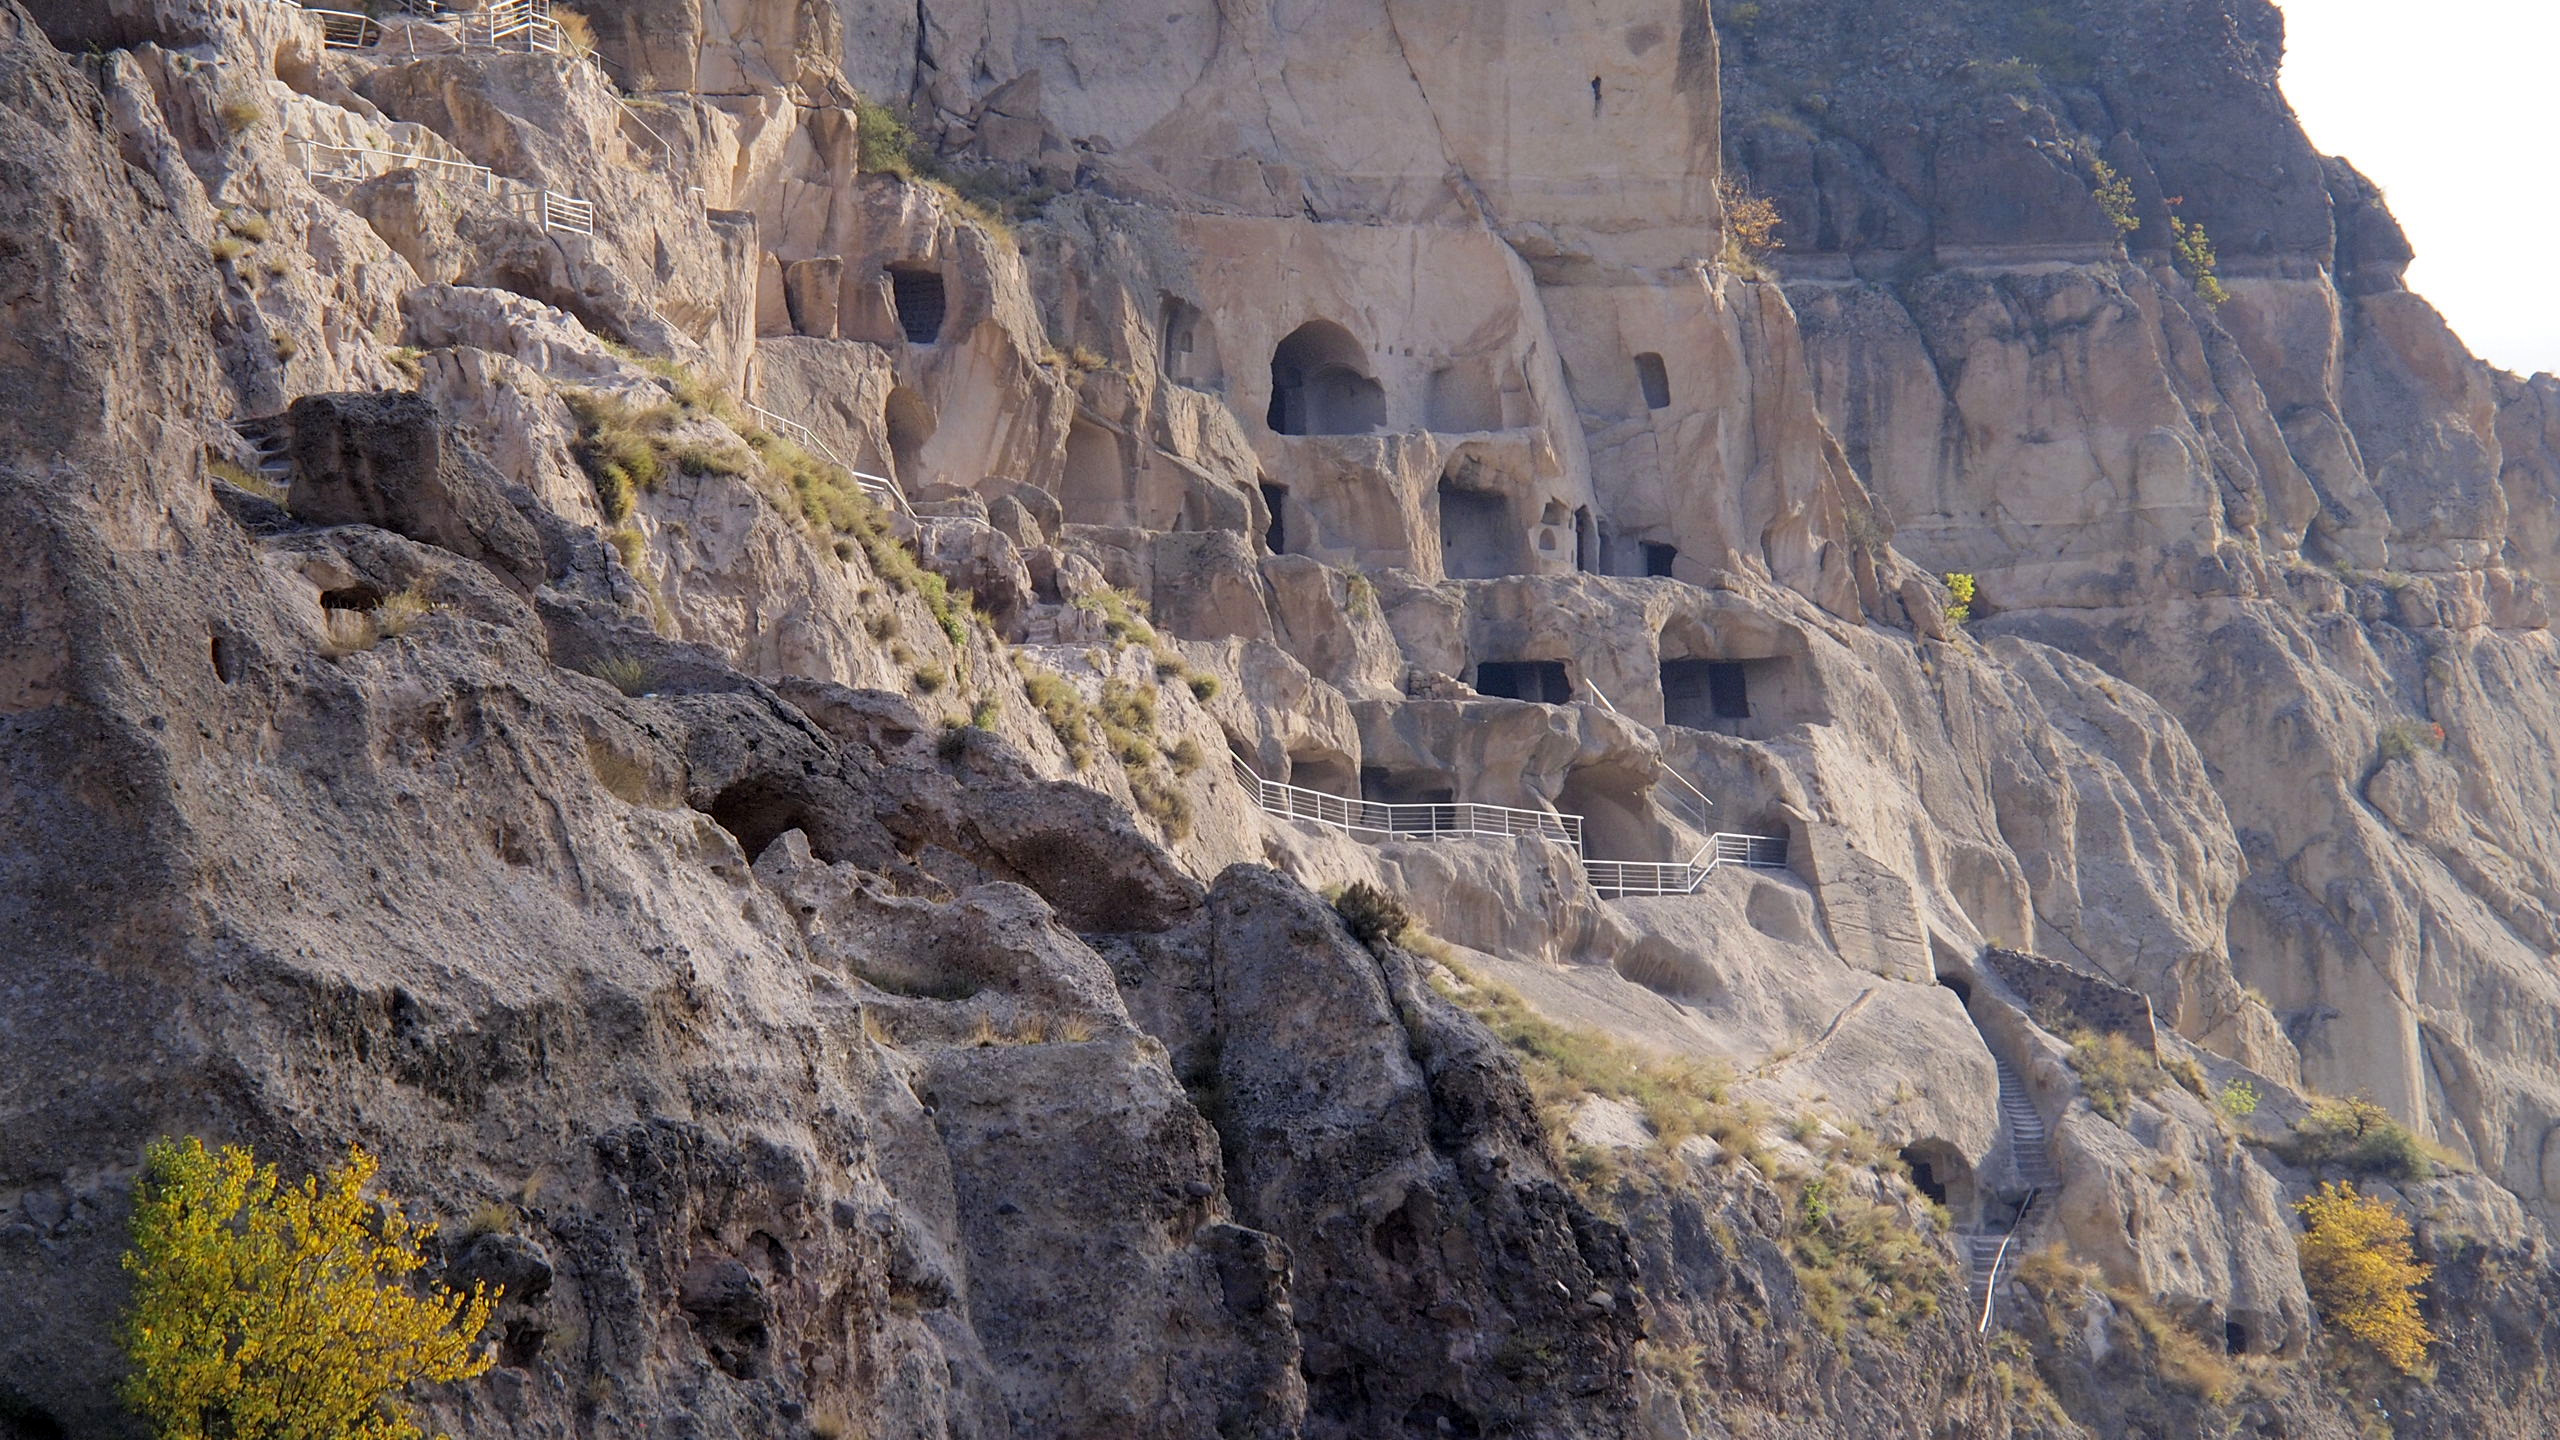 The cave city of Vardzia